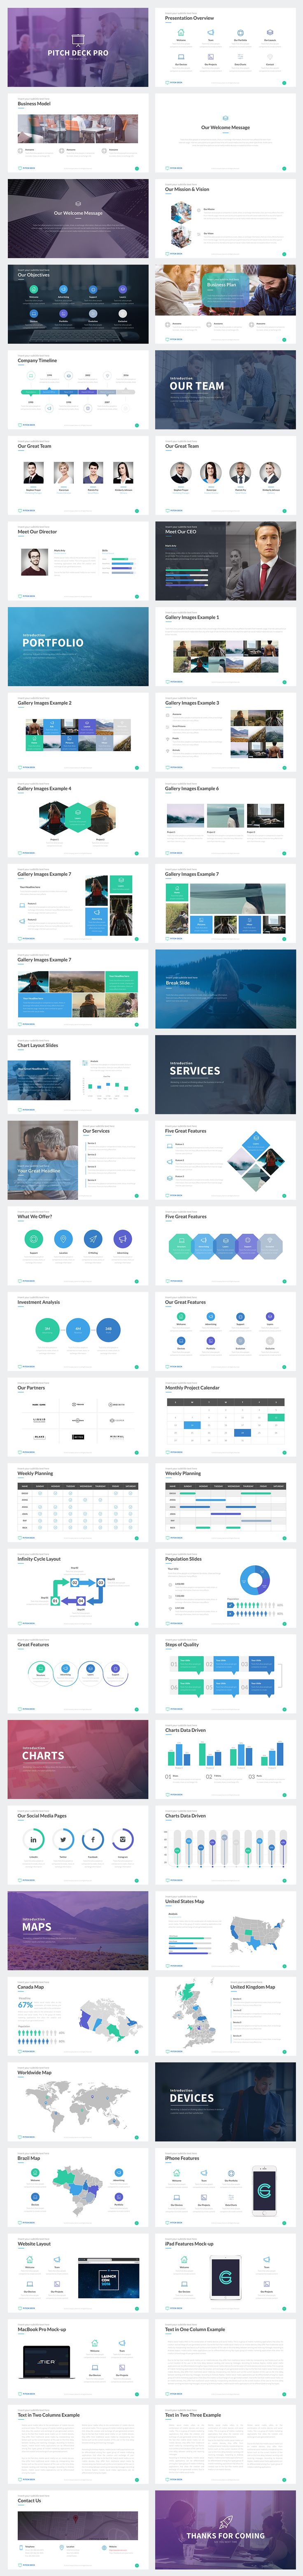 Pitch Deck Pro Powerpoint Template by Rocketo Graphics on @creativemarket